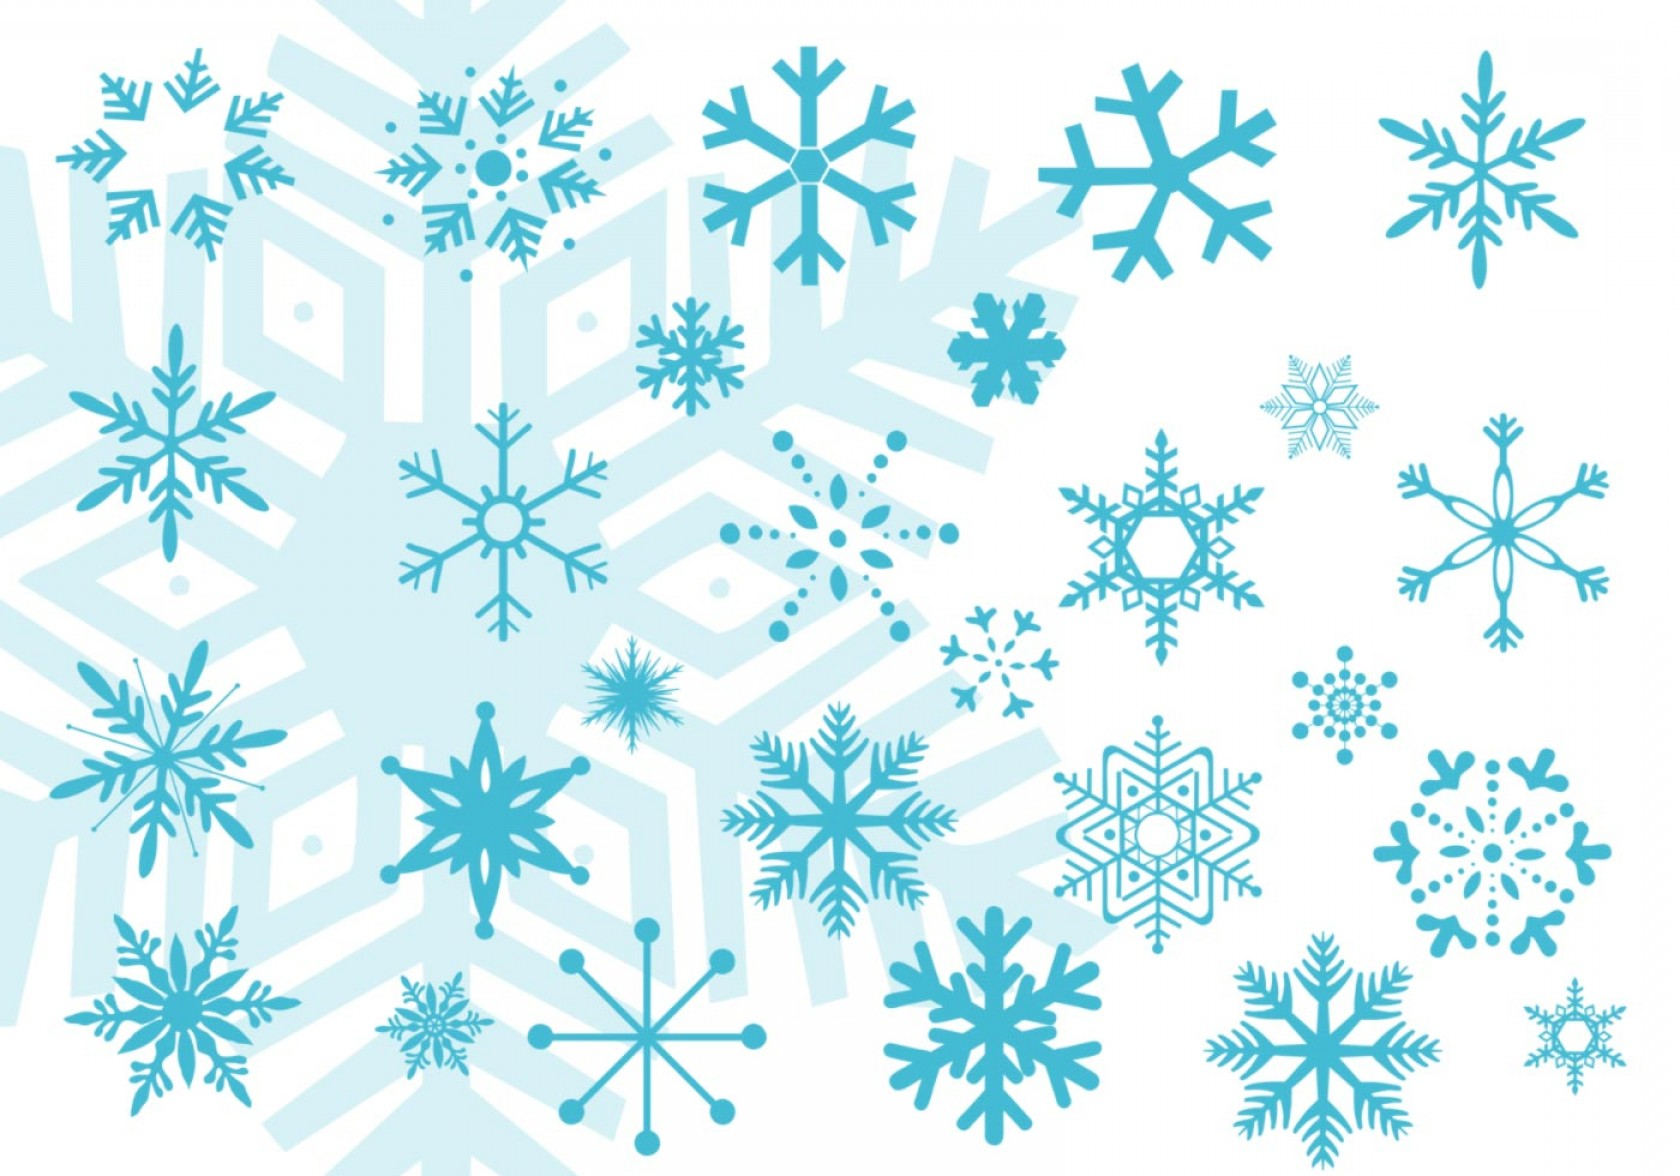 Pixelation Photoshop Vector: Snowflake Vector Brushes For Photoshop